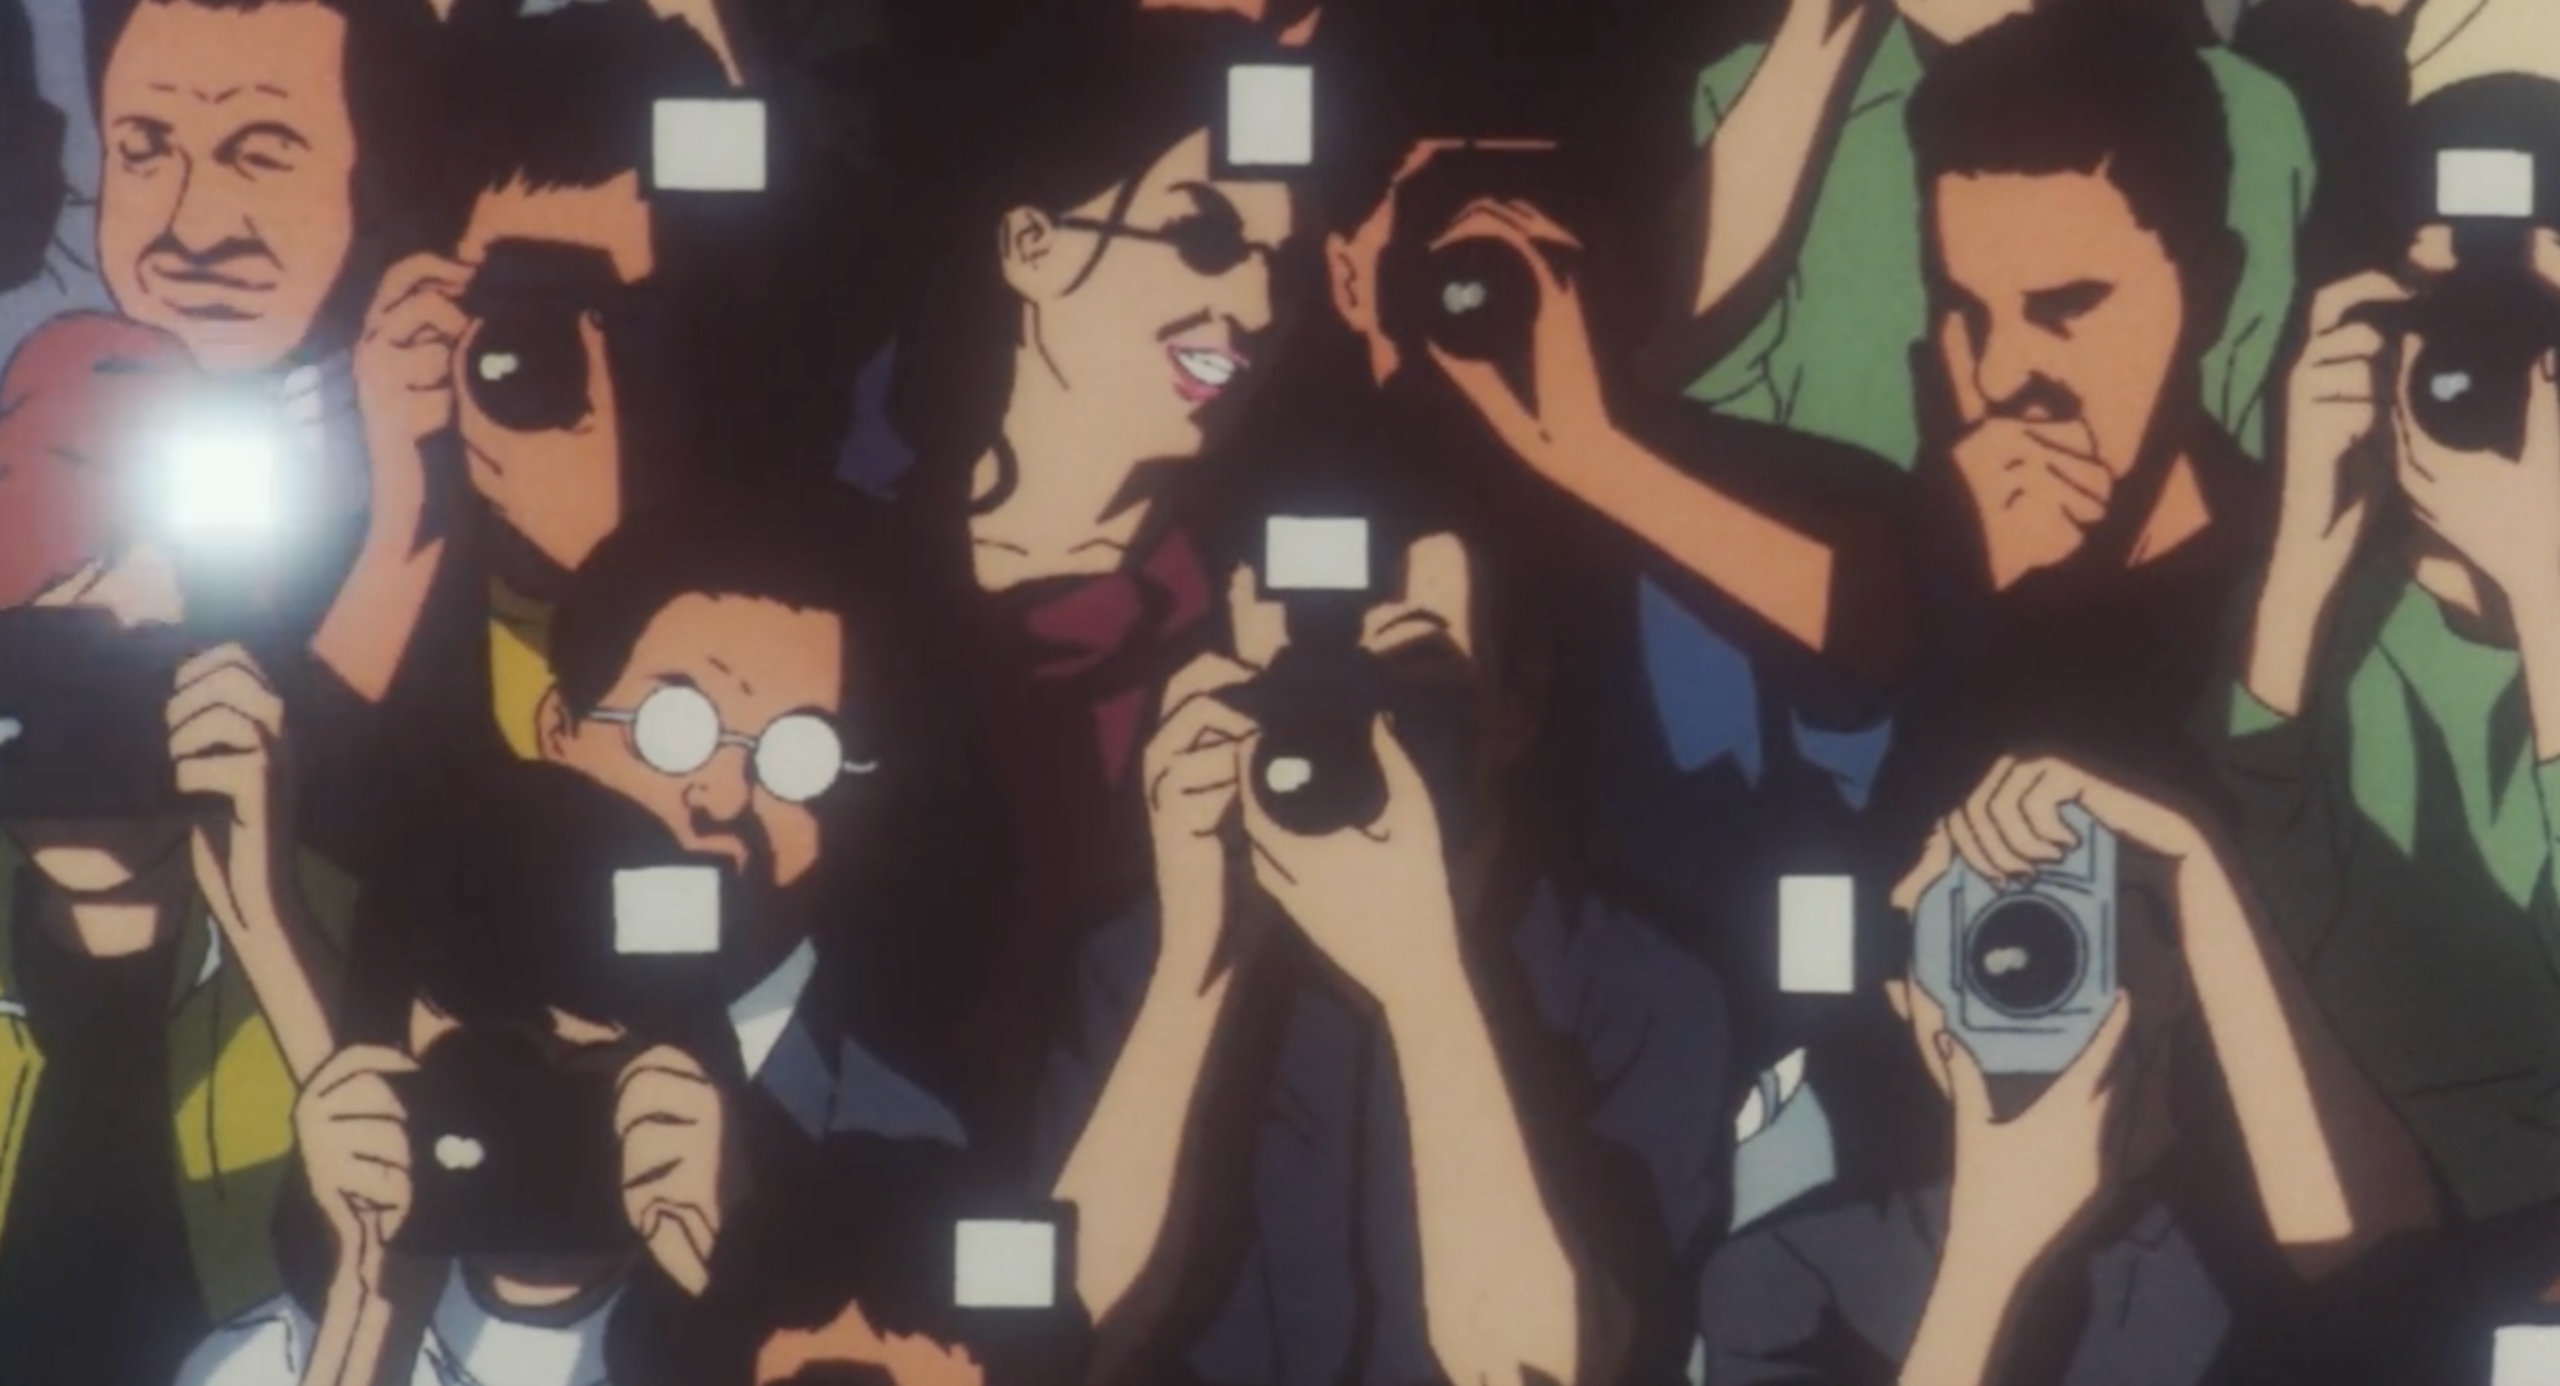 A crowd of photographers at a model show in Double Bind in Perfect Blue